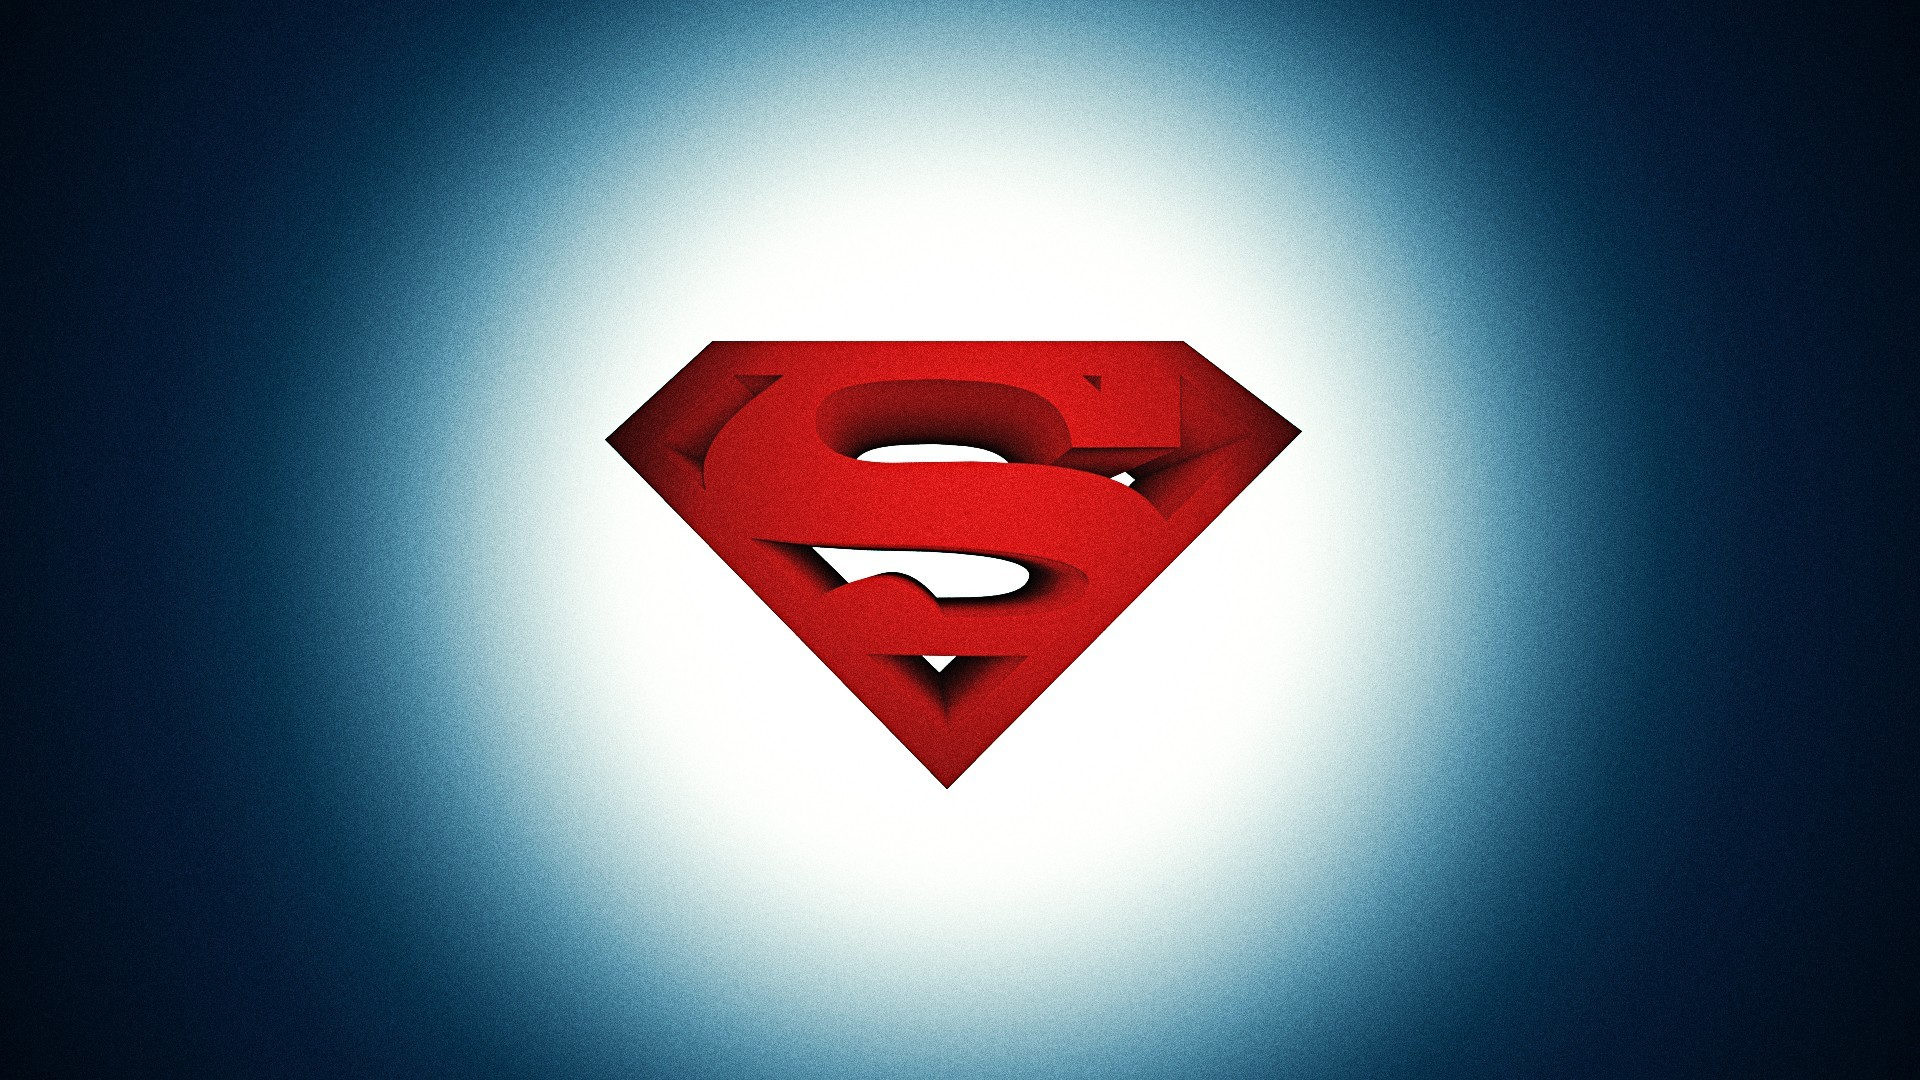 dc comics superman logos HD Wallpaper